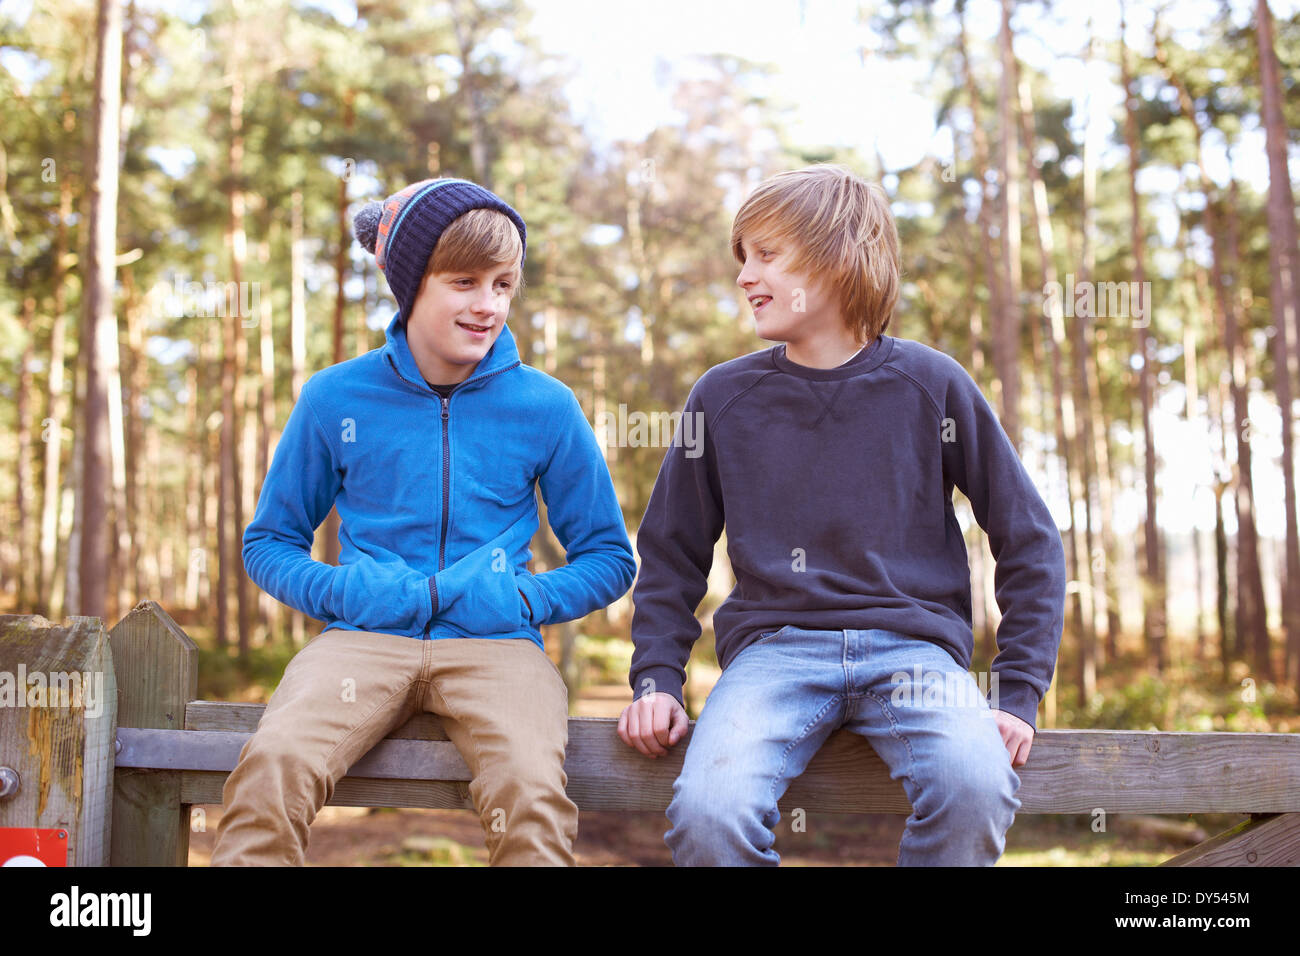 Twin brothers sitting on gate in forest Stock Photo